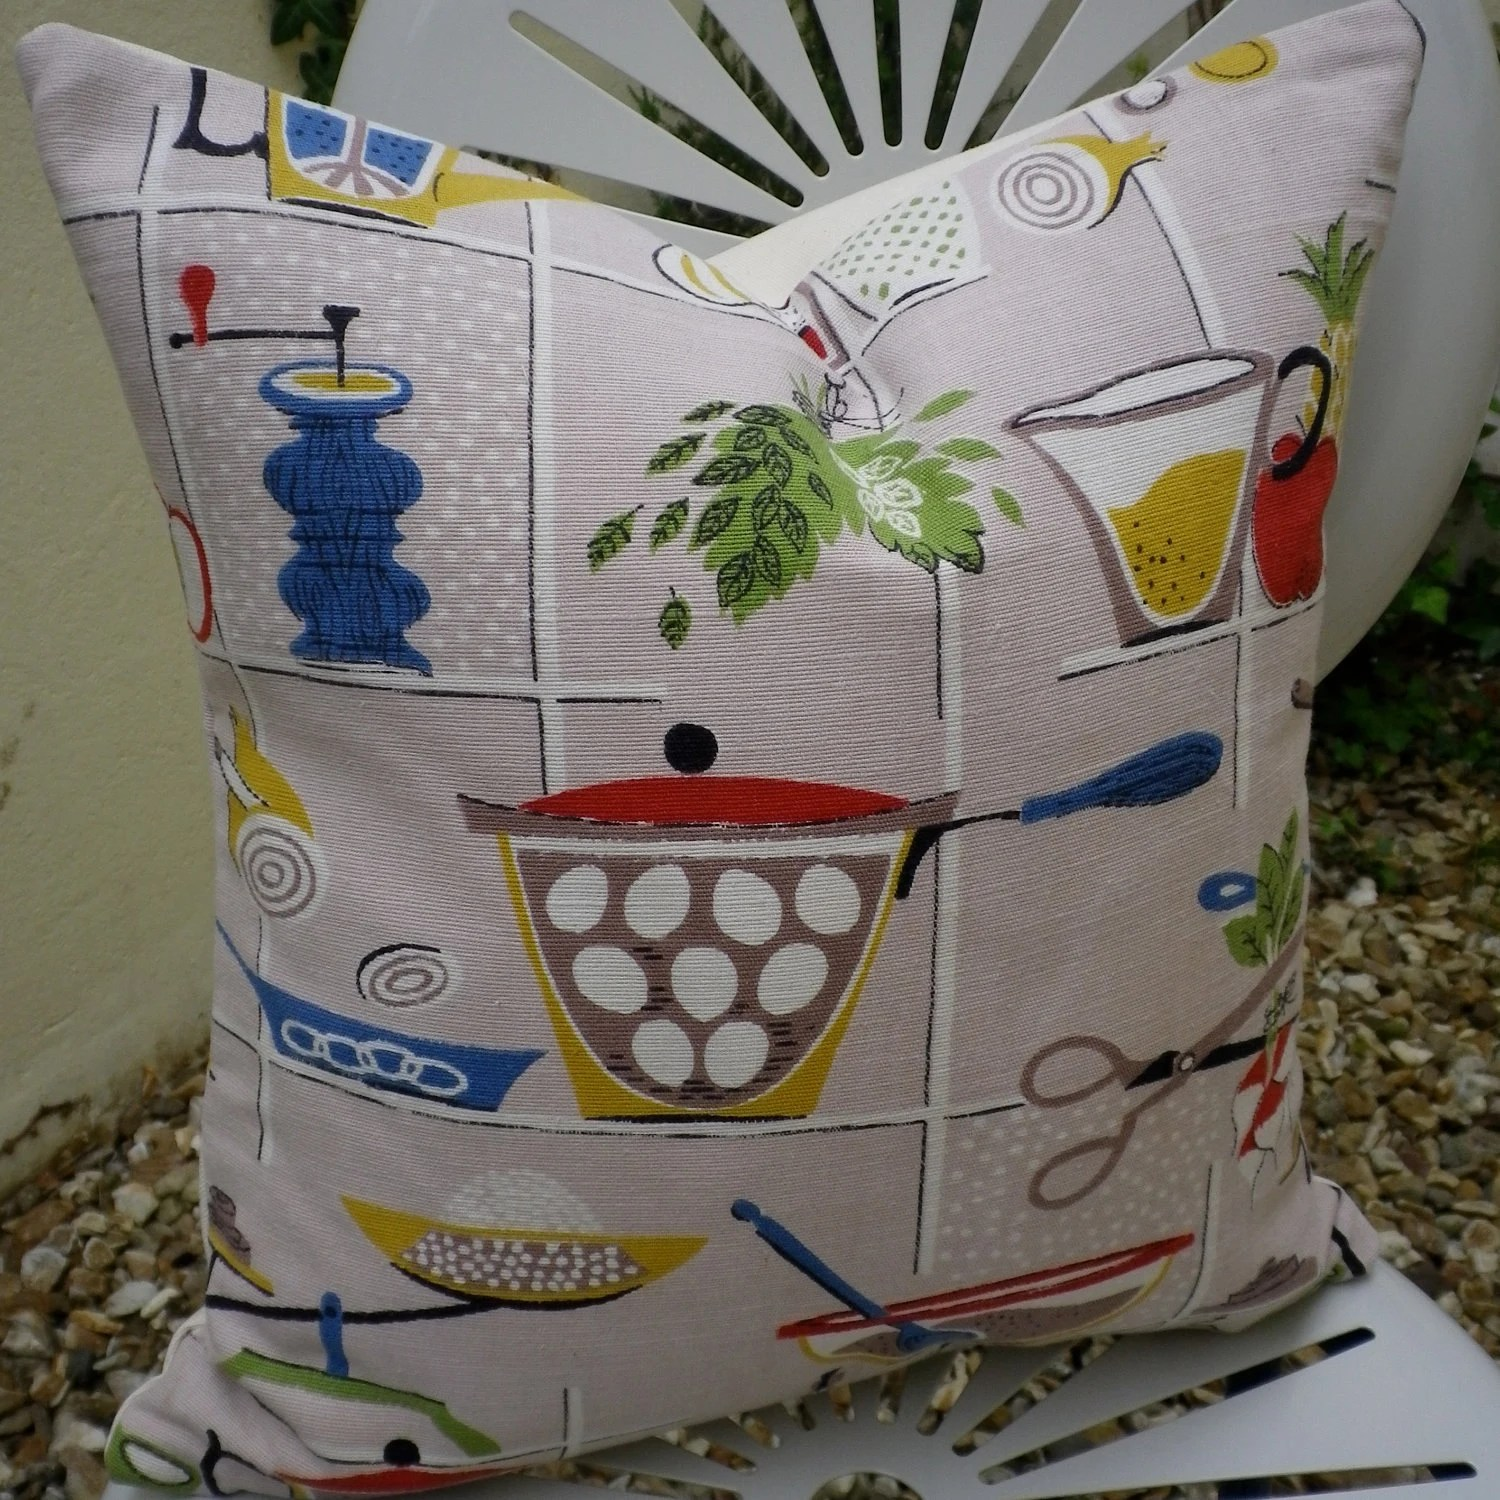 Vintage 1950s Kitchen Utensils Fabric Cushion Pillow